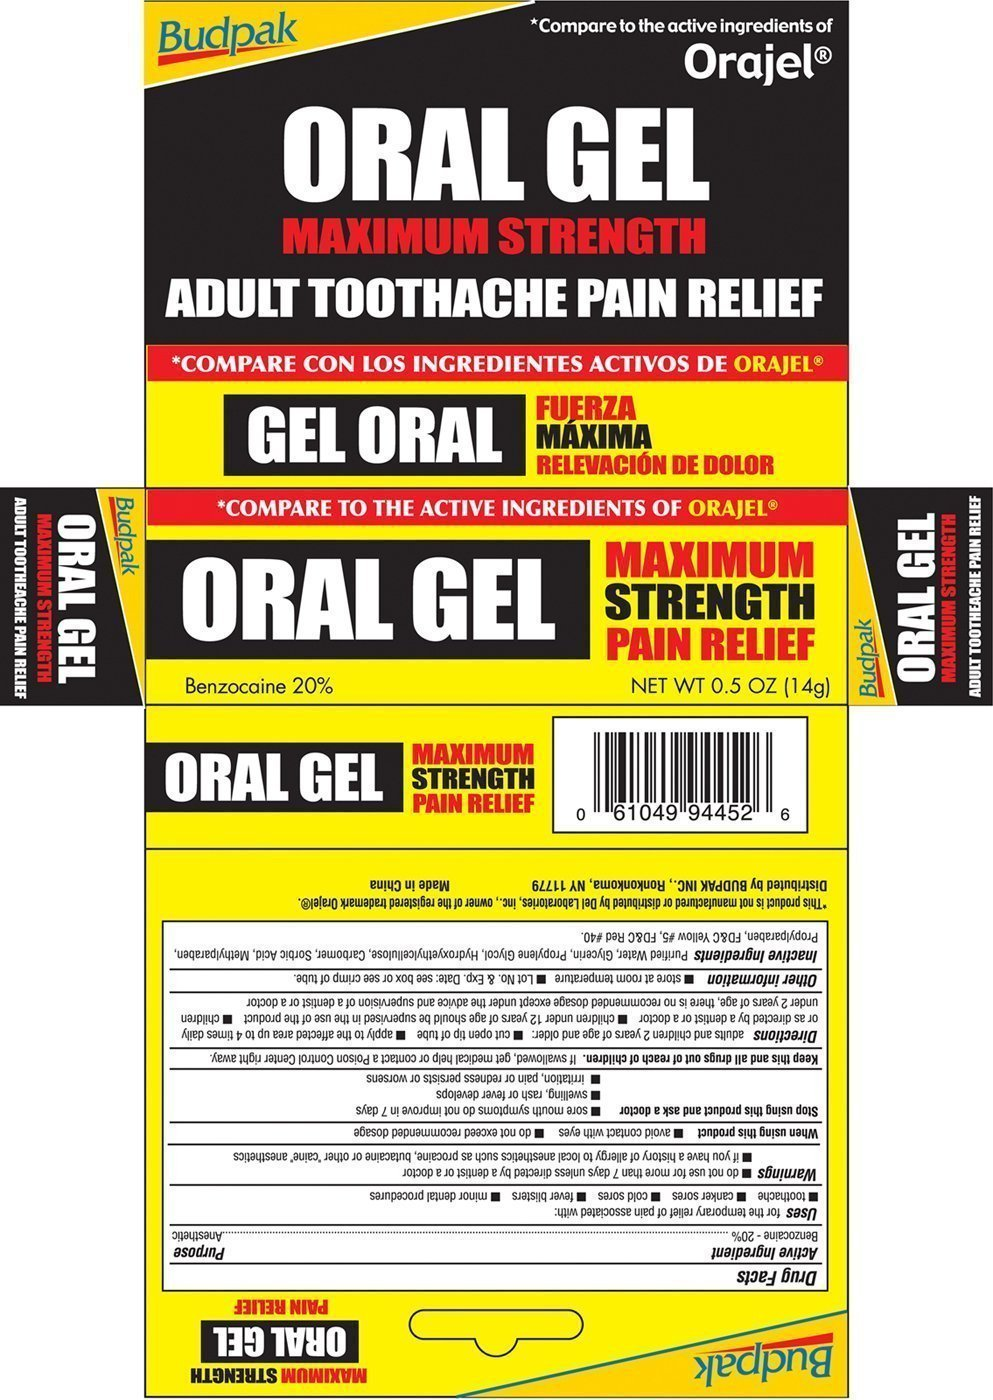 Oral Gel - FDA prescribing information side effects and uses